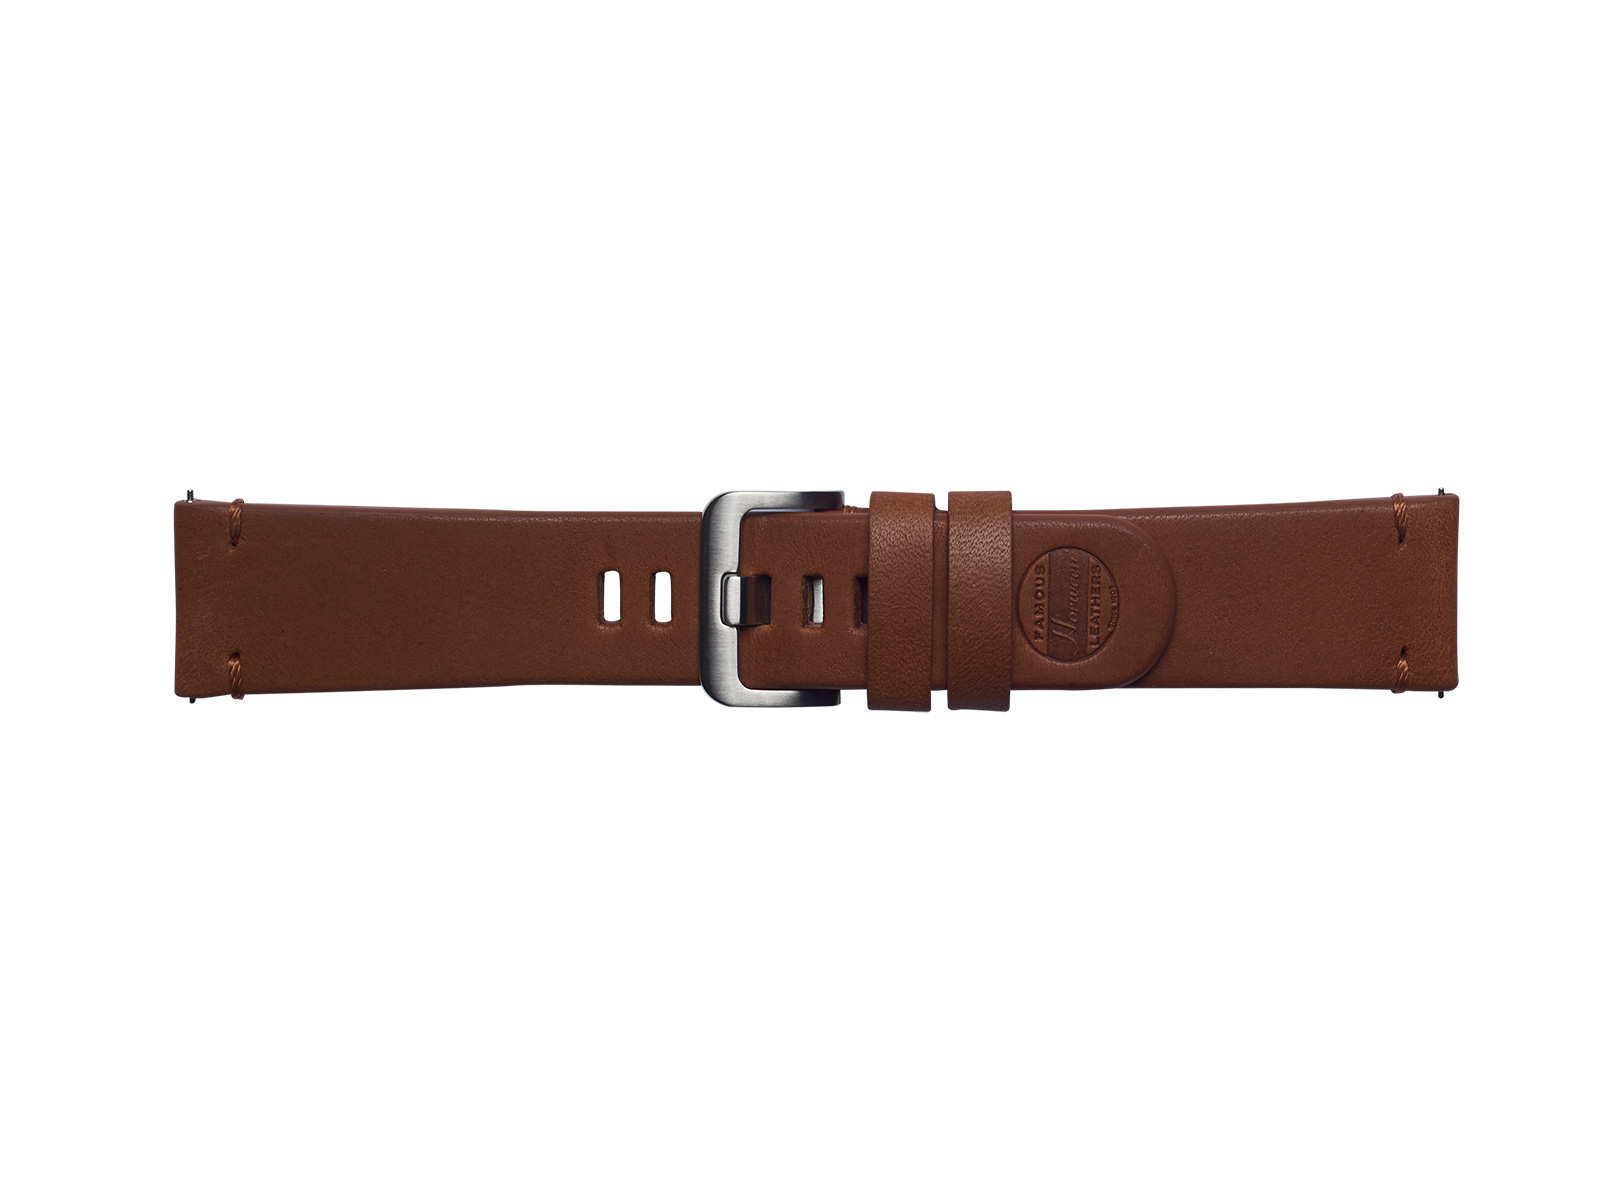 Essex Leather Band for Galaxy Watch 46mm & Gear S3, Brown